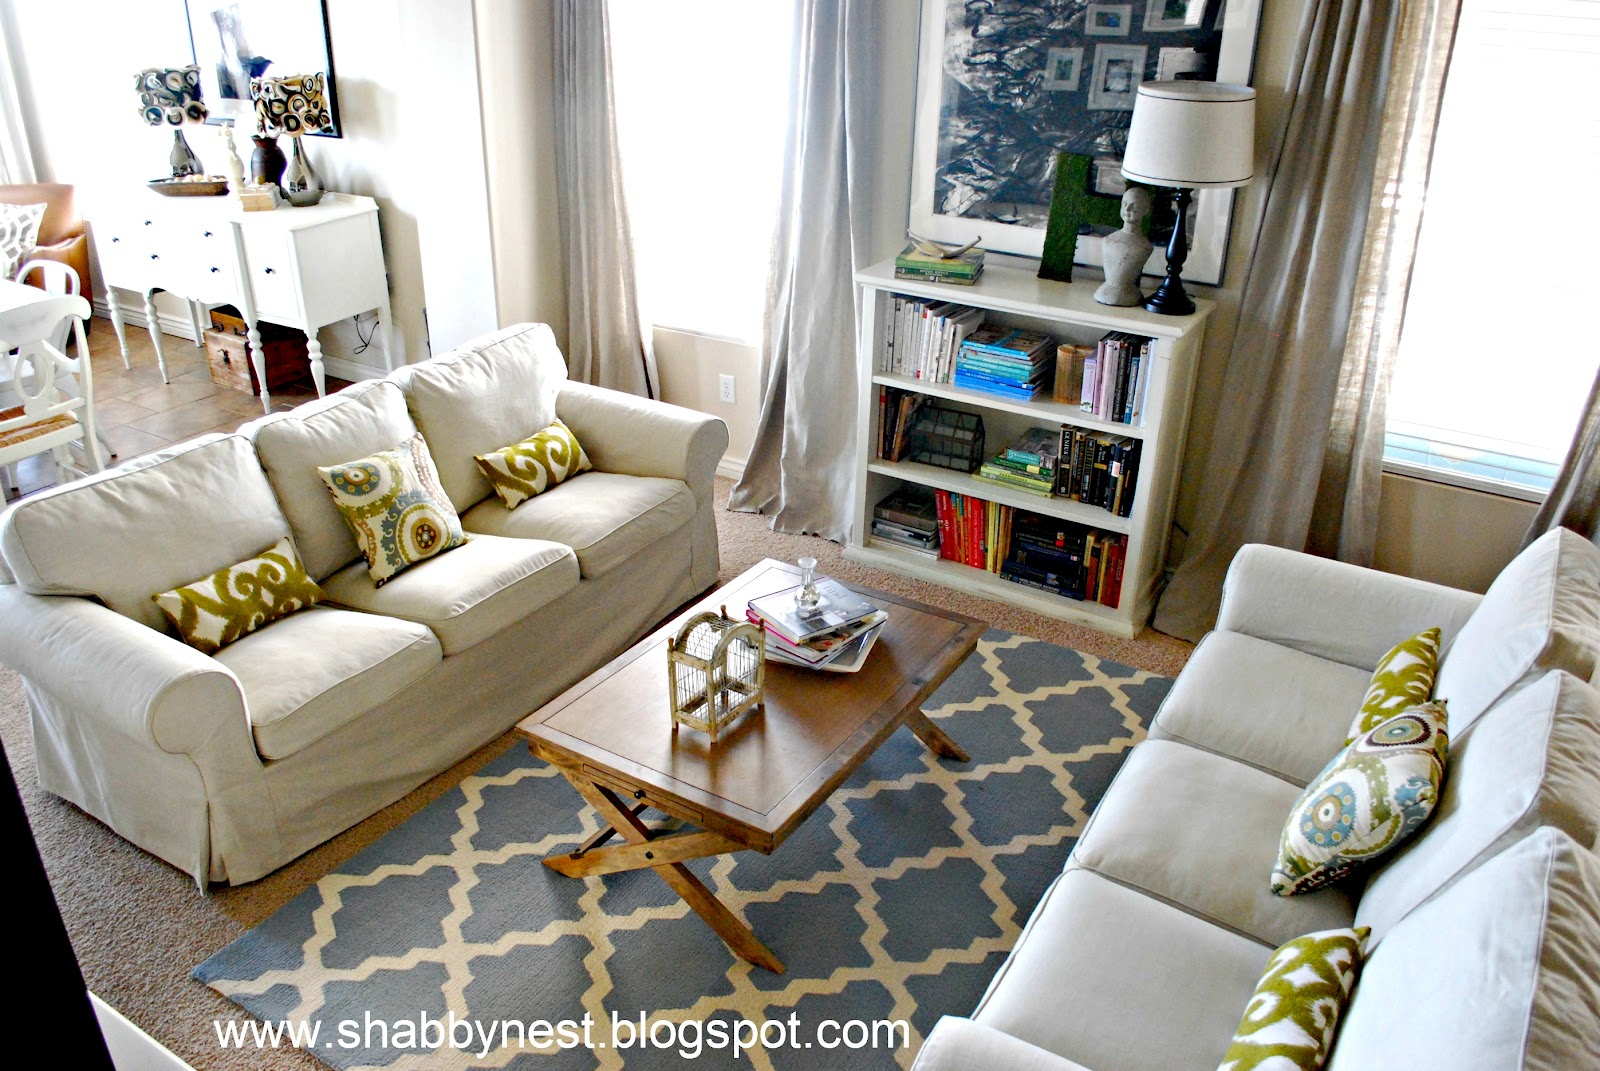 Living Room Design With Two Rugs Instead Of One